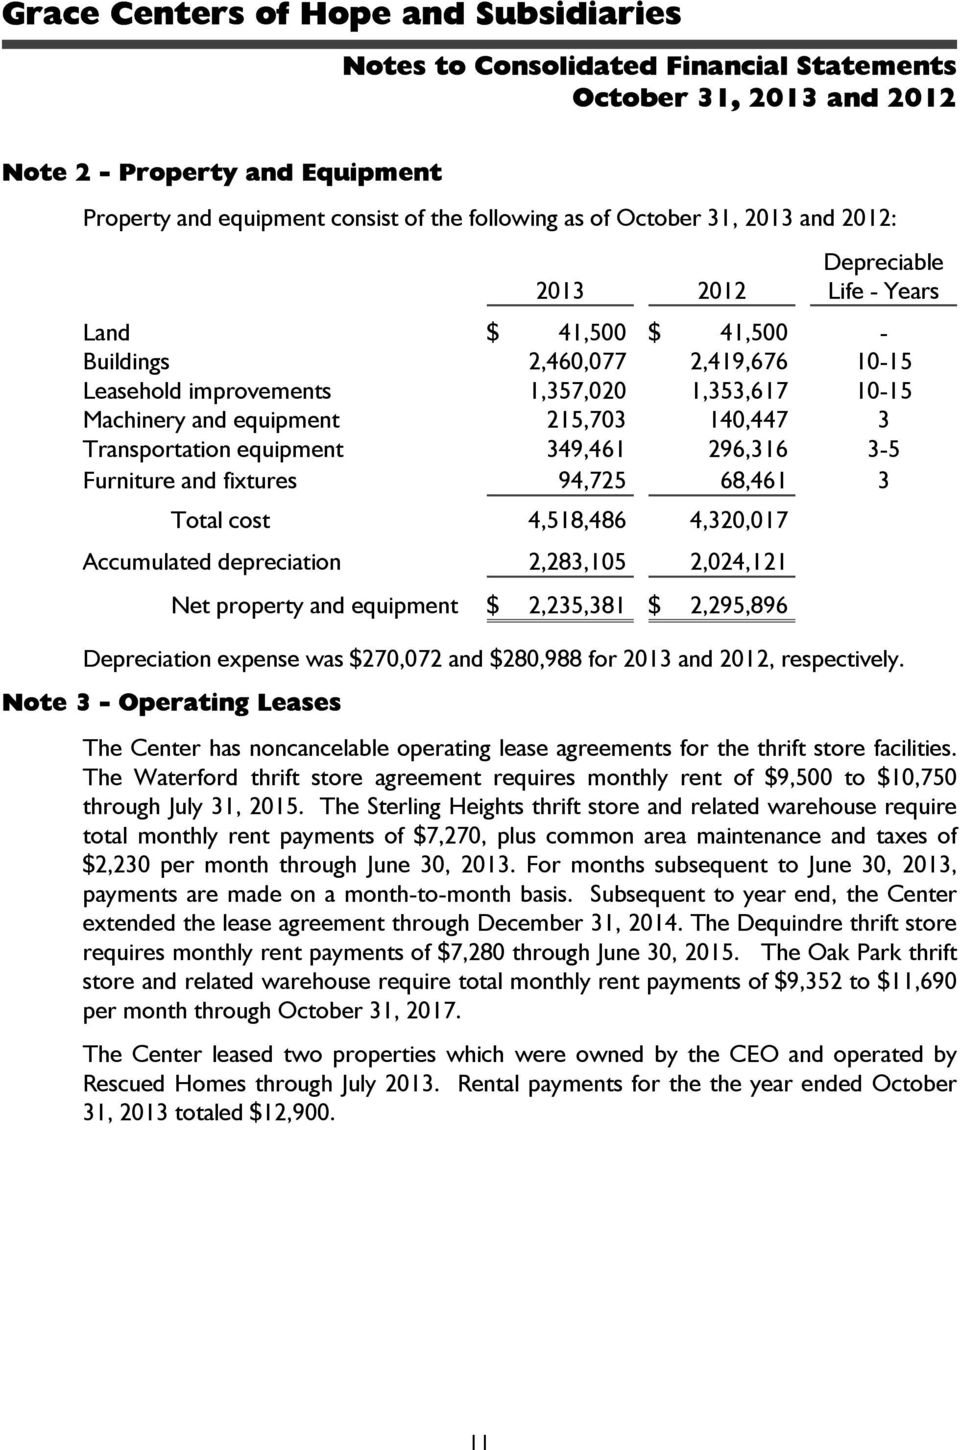 Accumulated depreciation 2,283,105 2,024,121 Net property and equipment $ 2,235,381 $ 2,295,896 Depreciation expense was $270,072 and $280,988 for 2013 and 2012, respectively.